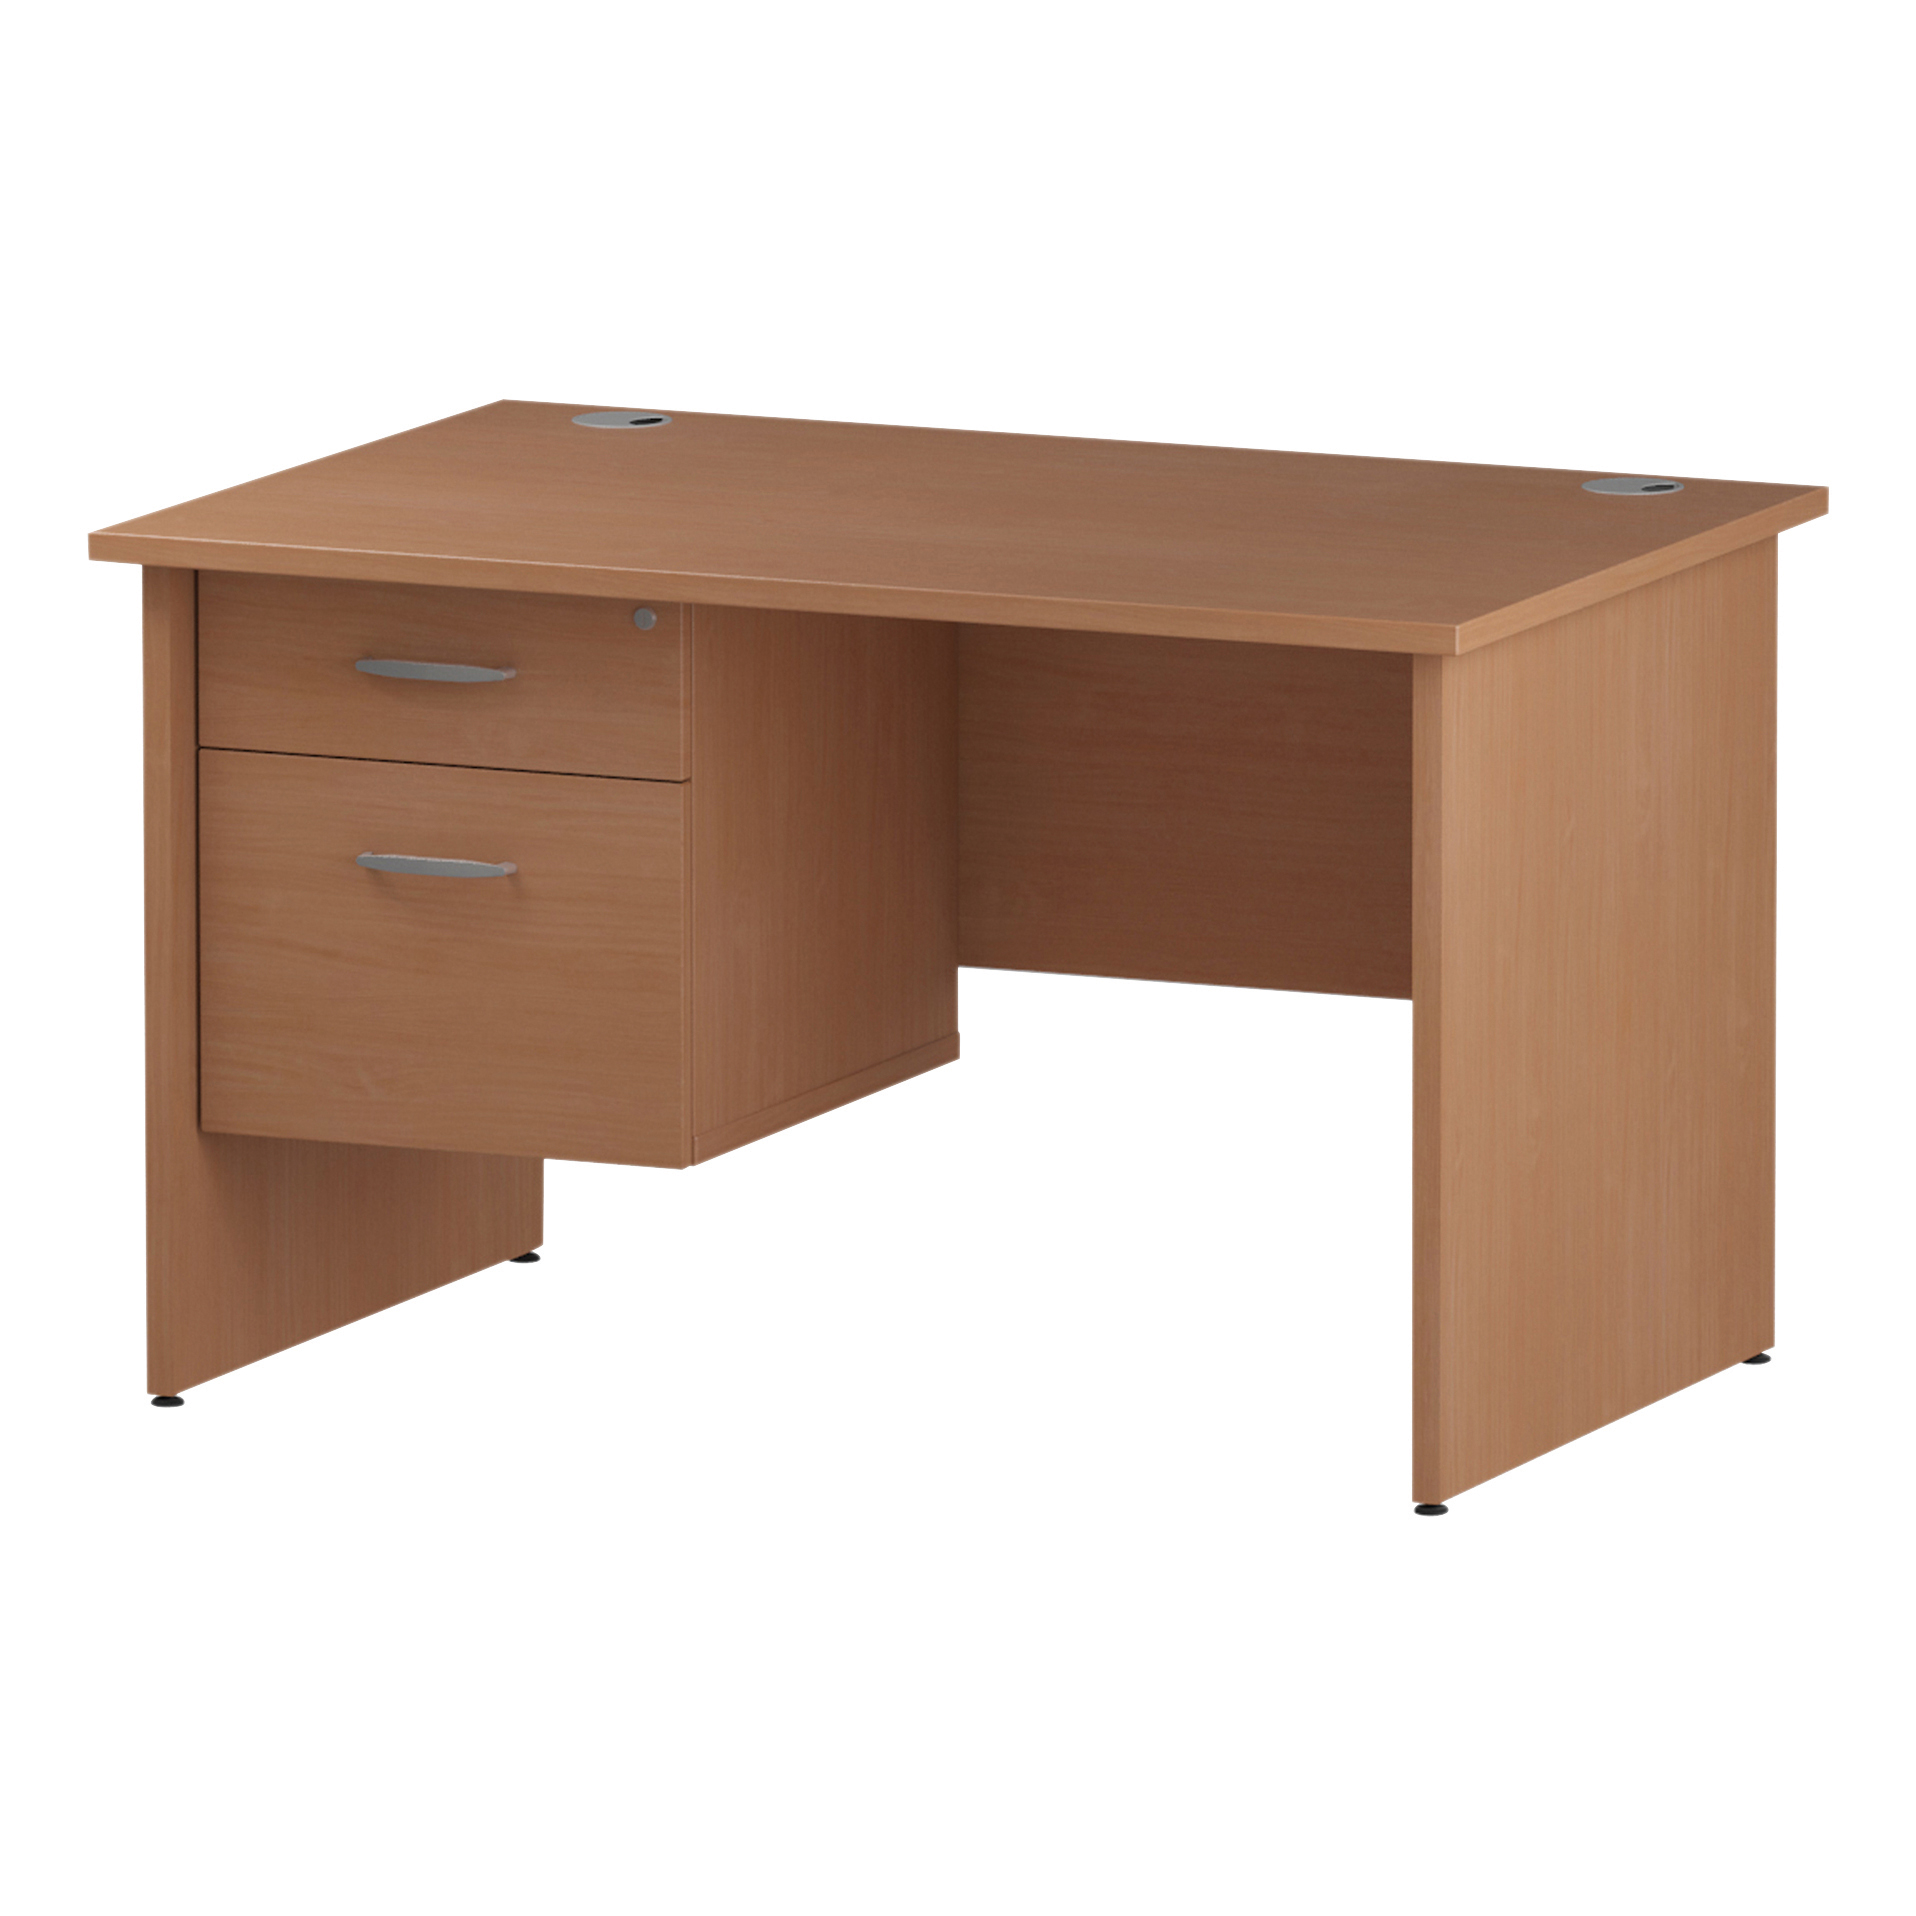 Trexus Rectangular Desk Panel End Leg 1200x800mm Fixed Pedestal 2 Drawers Beech Ref I001733